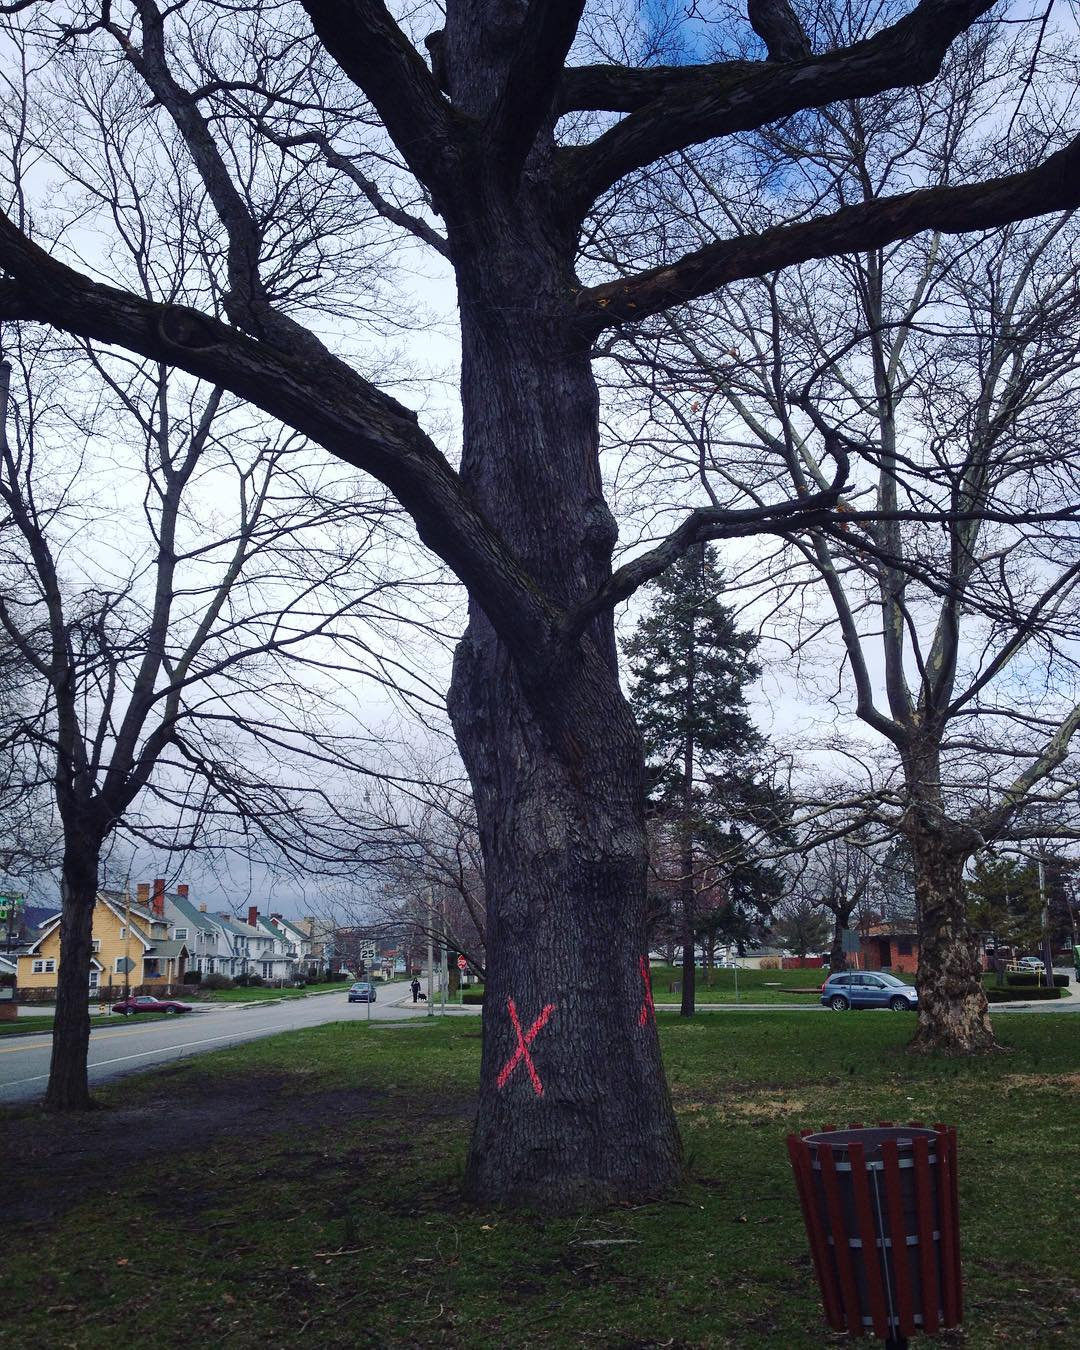 A huge white oak at the edge of a park with red X's painted on its trunk.